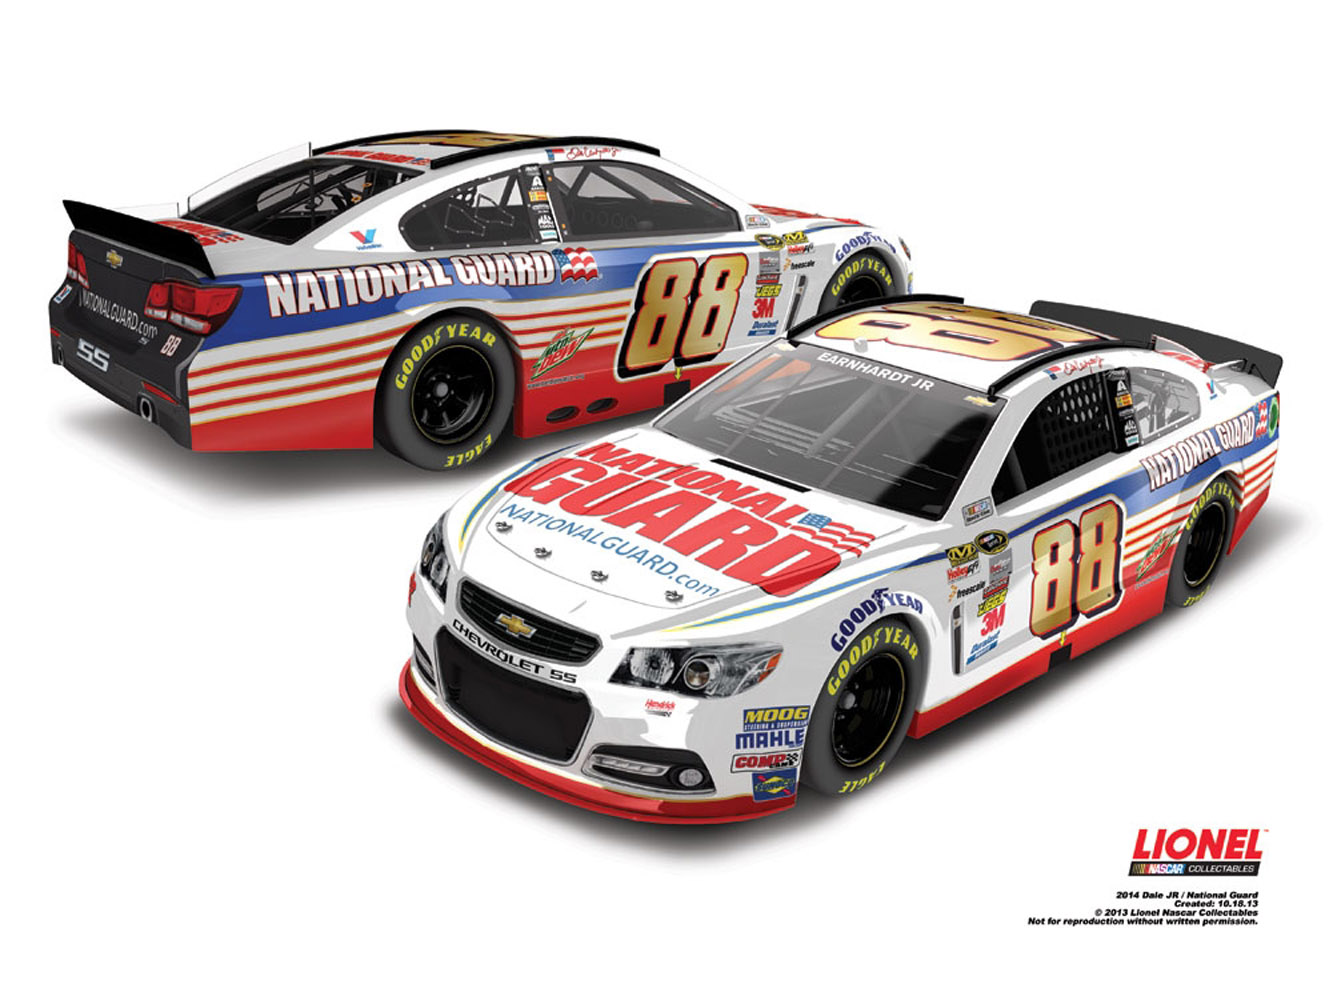 2014 Dale Earnhardt Jr #88 National Guard 1/24 Diecast Car